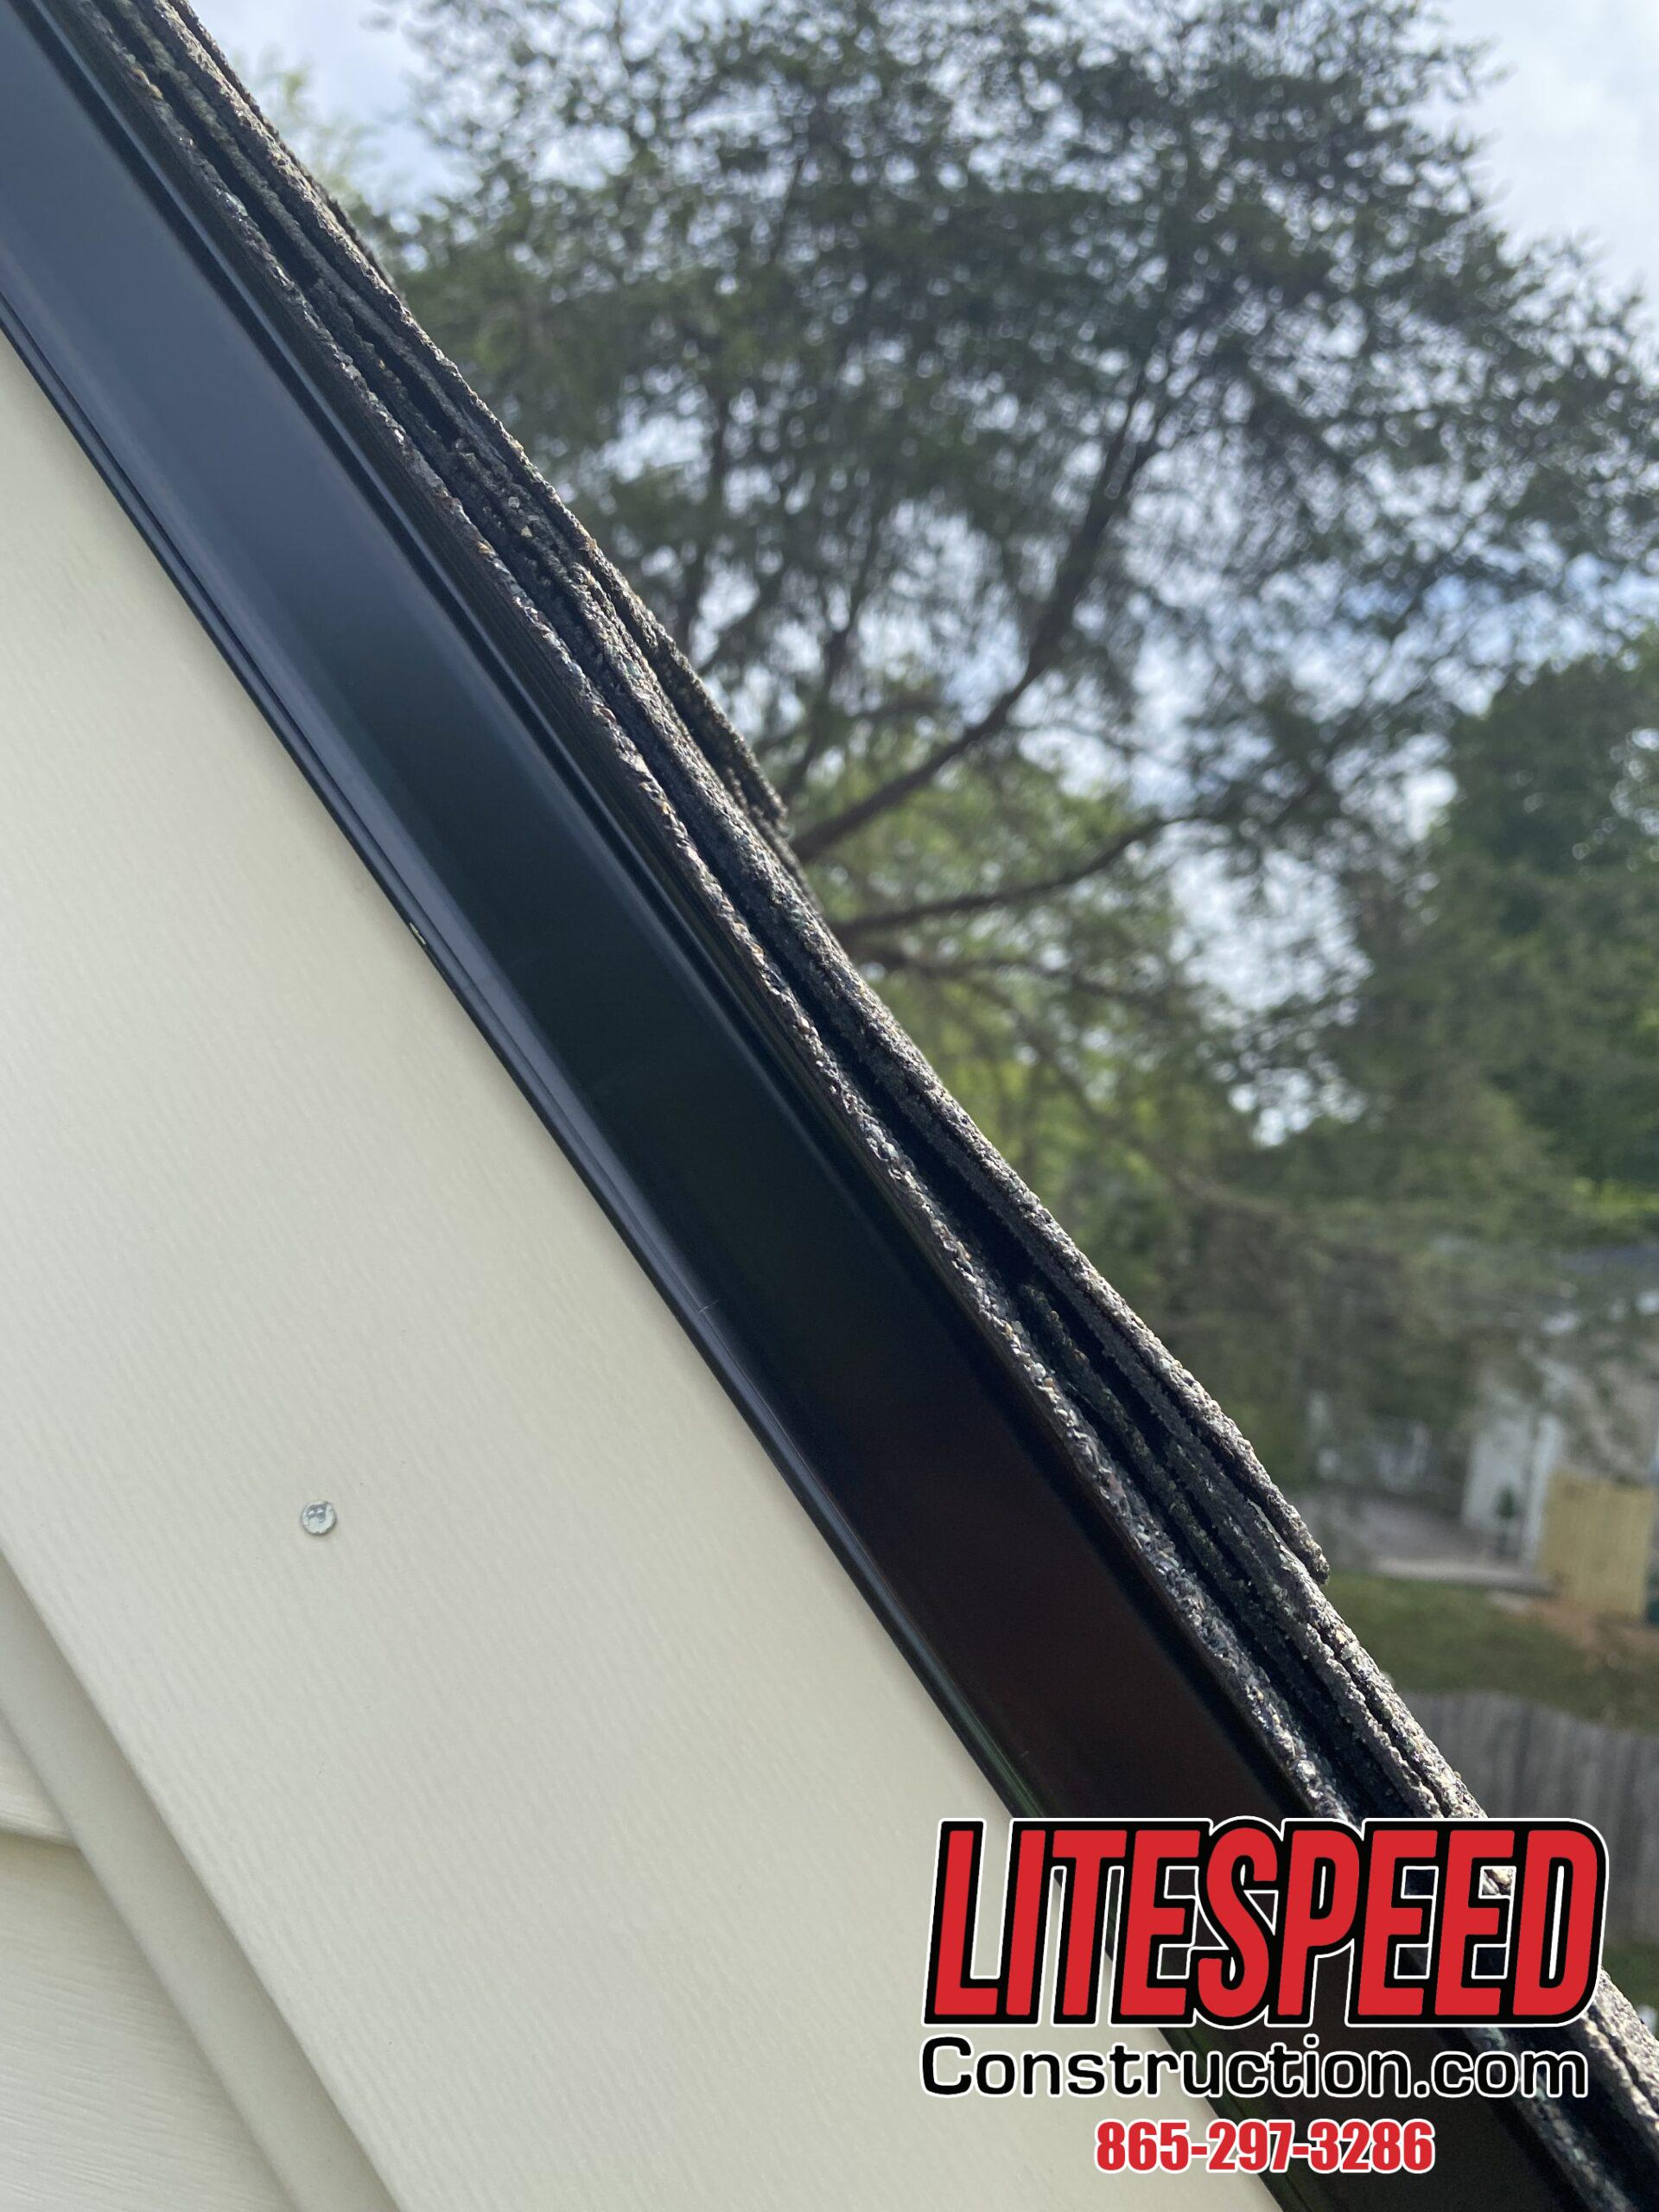 This is a picture of black drip edge under the shingles of a new roof